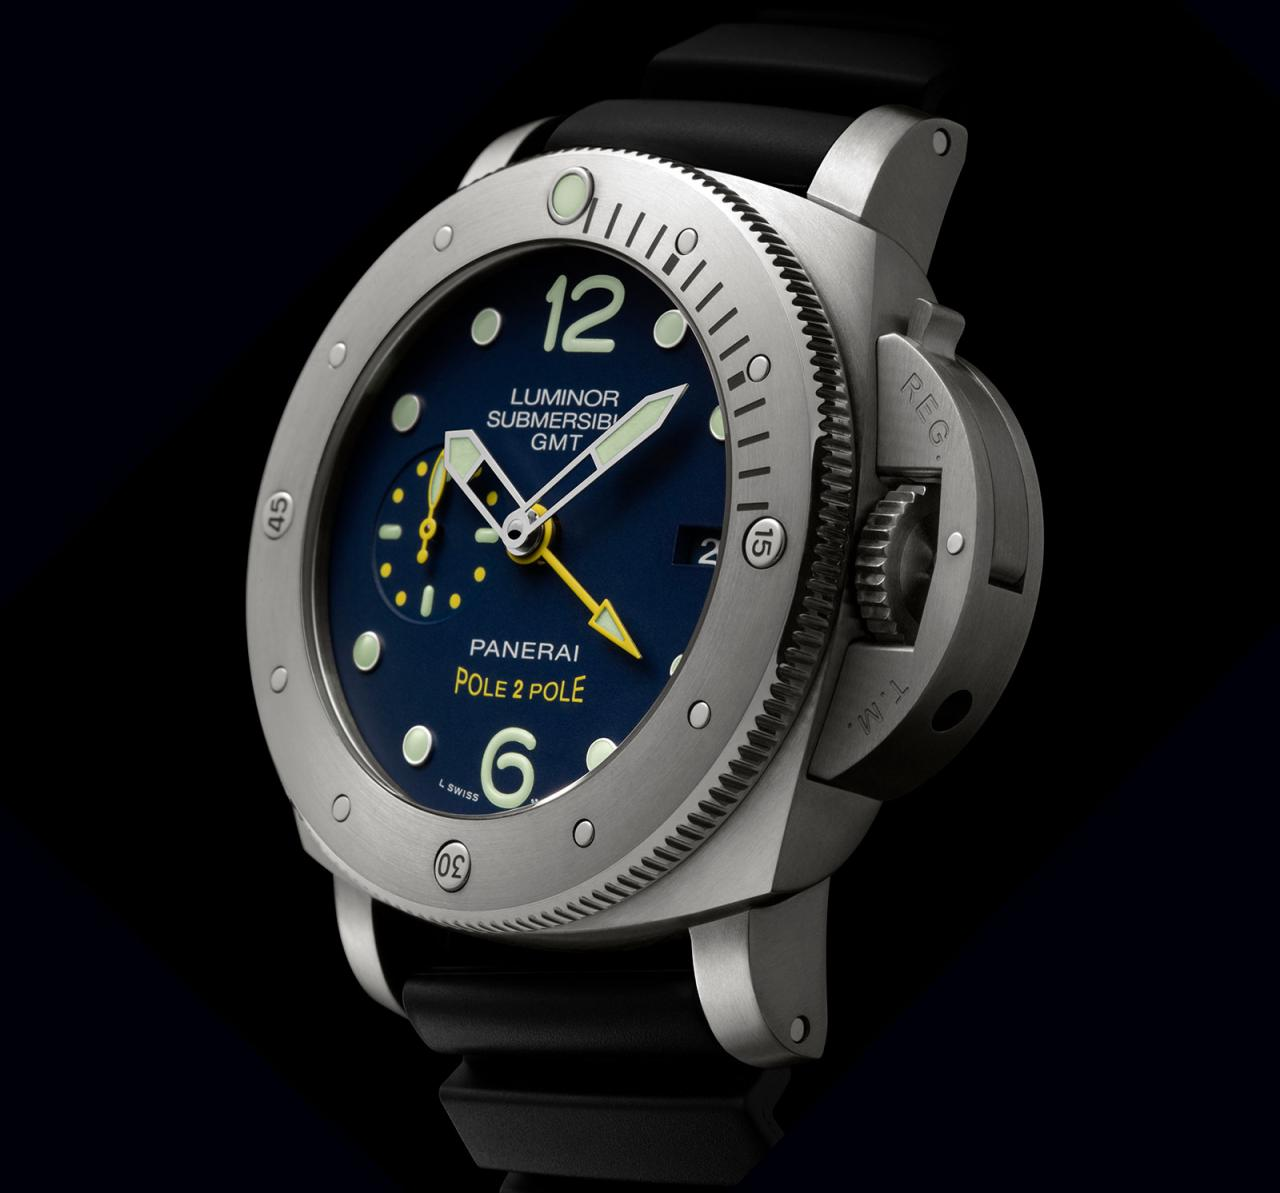 Panerai Luminor Submersible 1950 GMT PAM719 Mike Horn 4